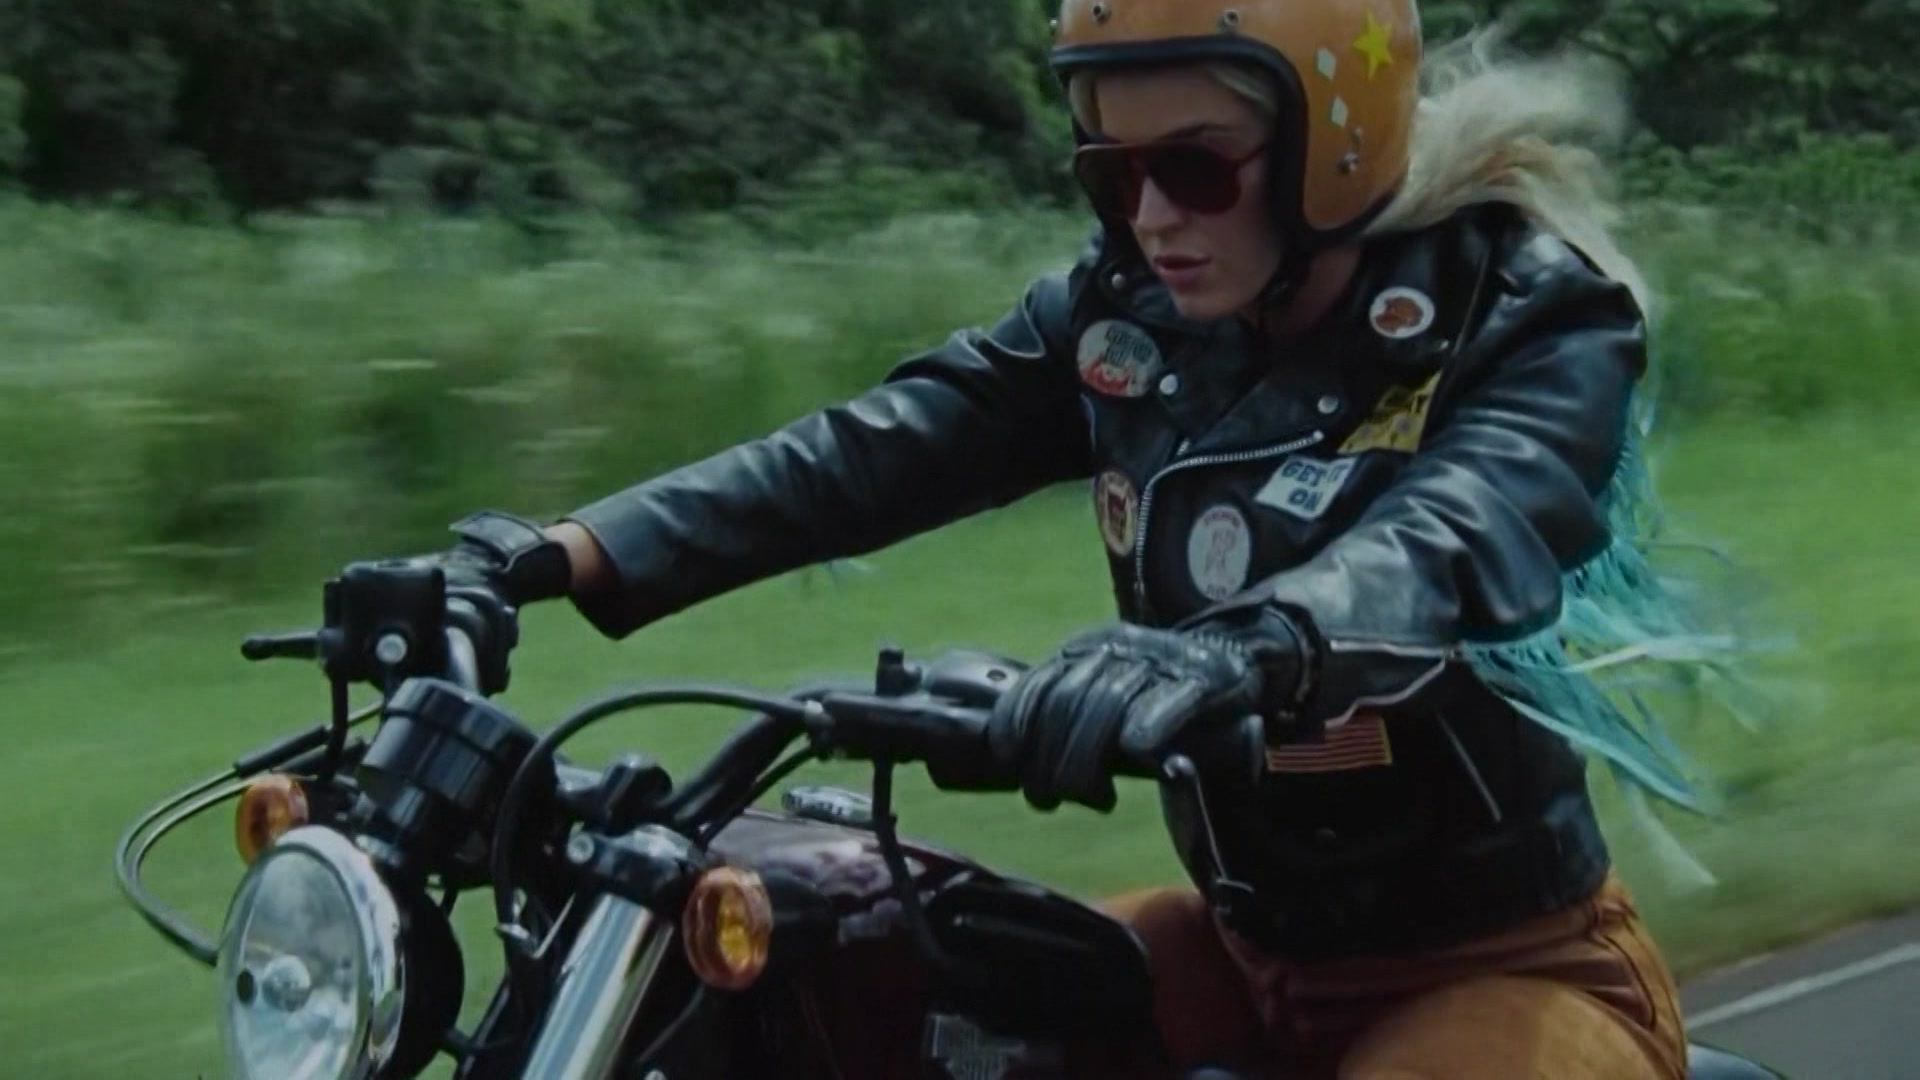 Harley-Davidson teams up with Katy Perry for 'Harleys In Hawaii' song